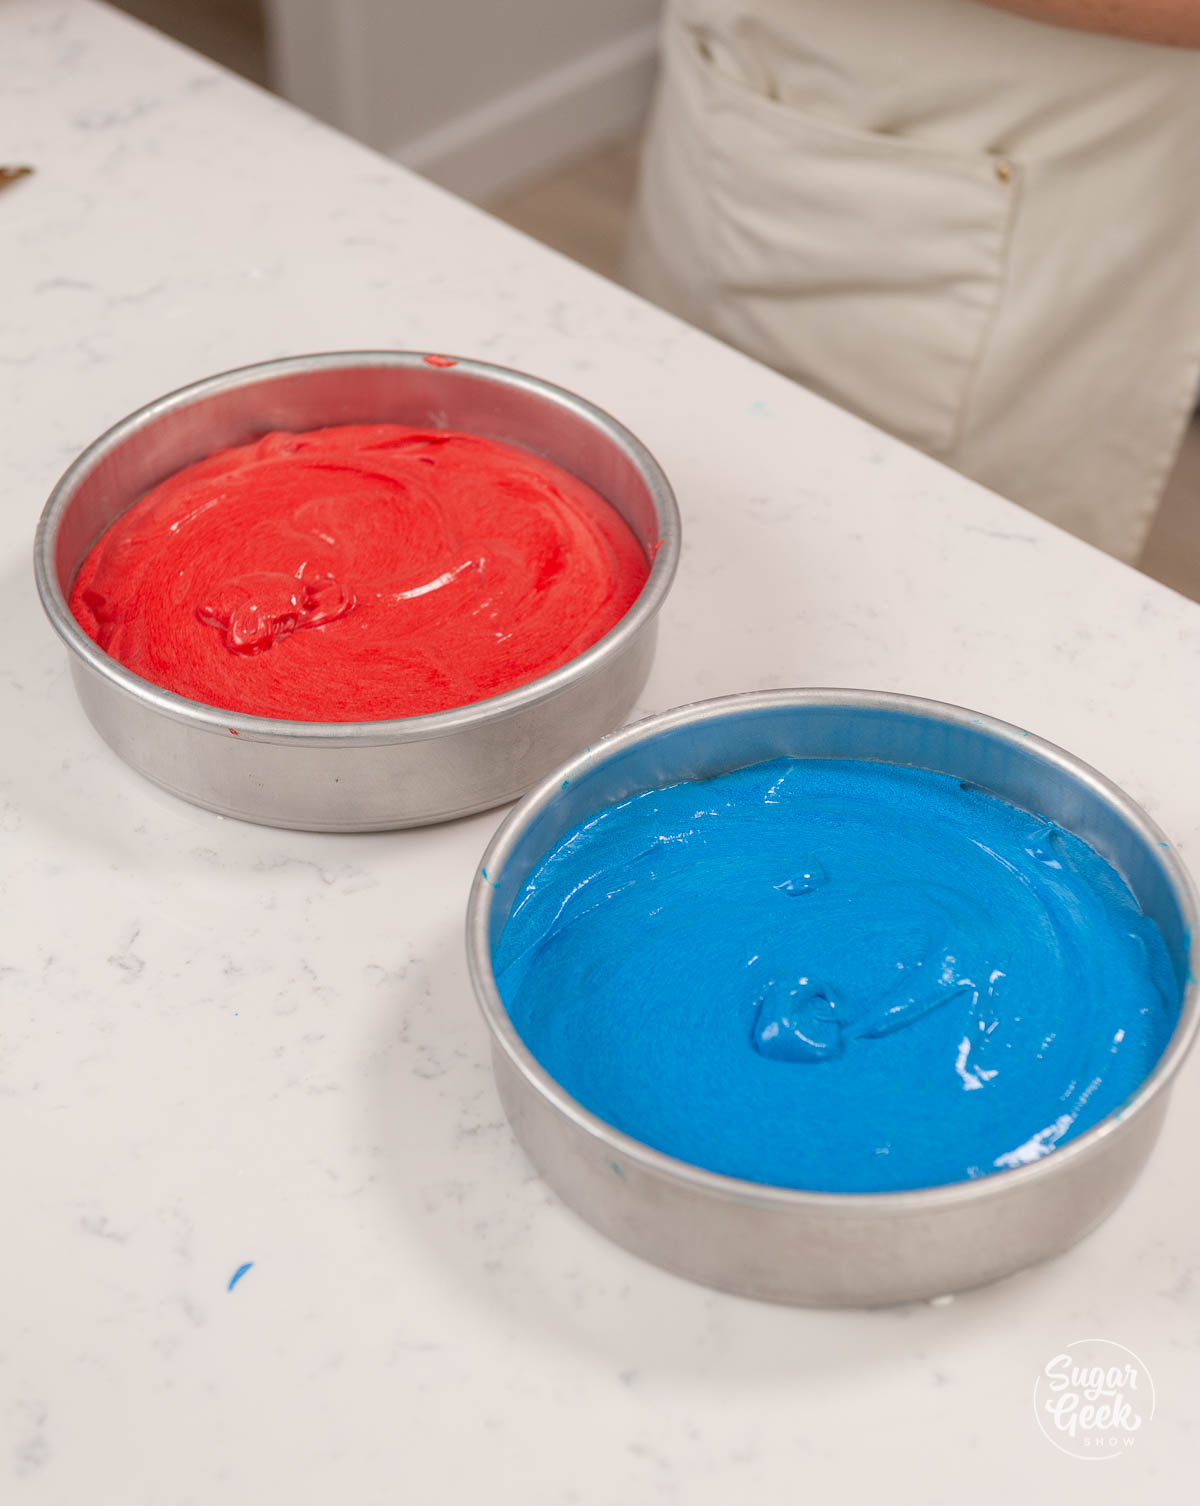 red and blue cake batter in cake pans